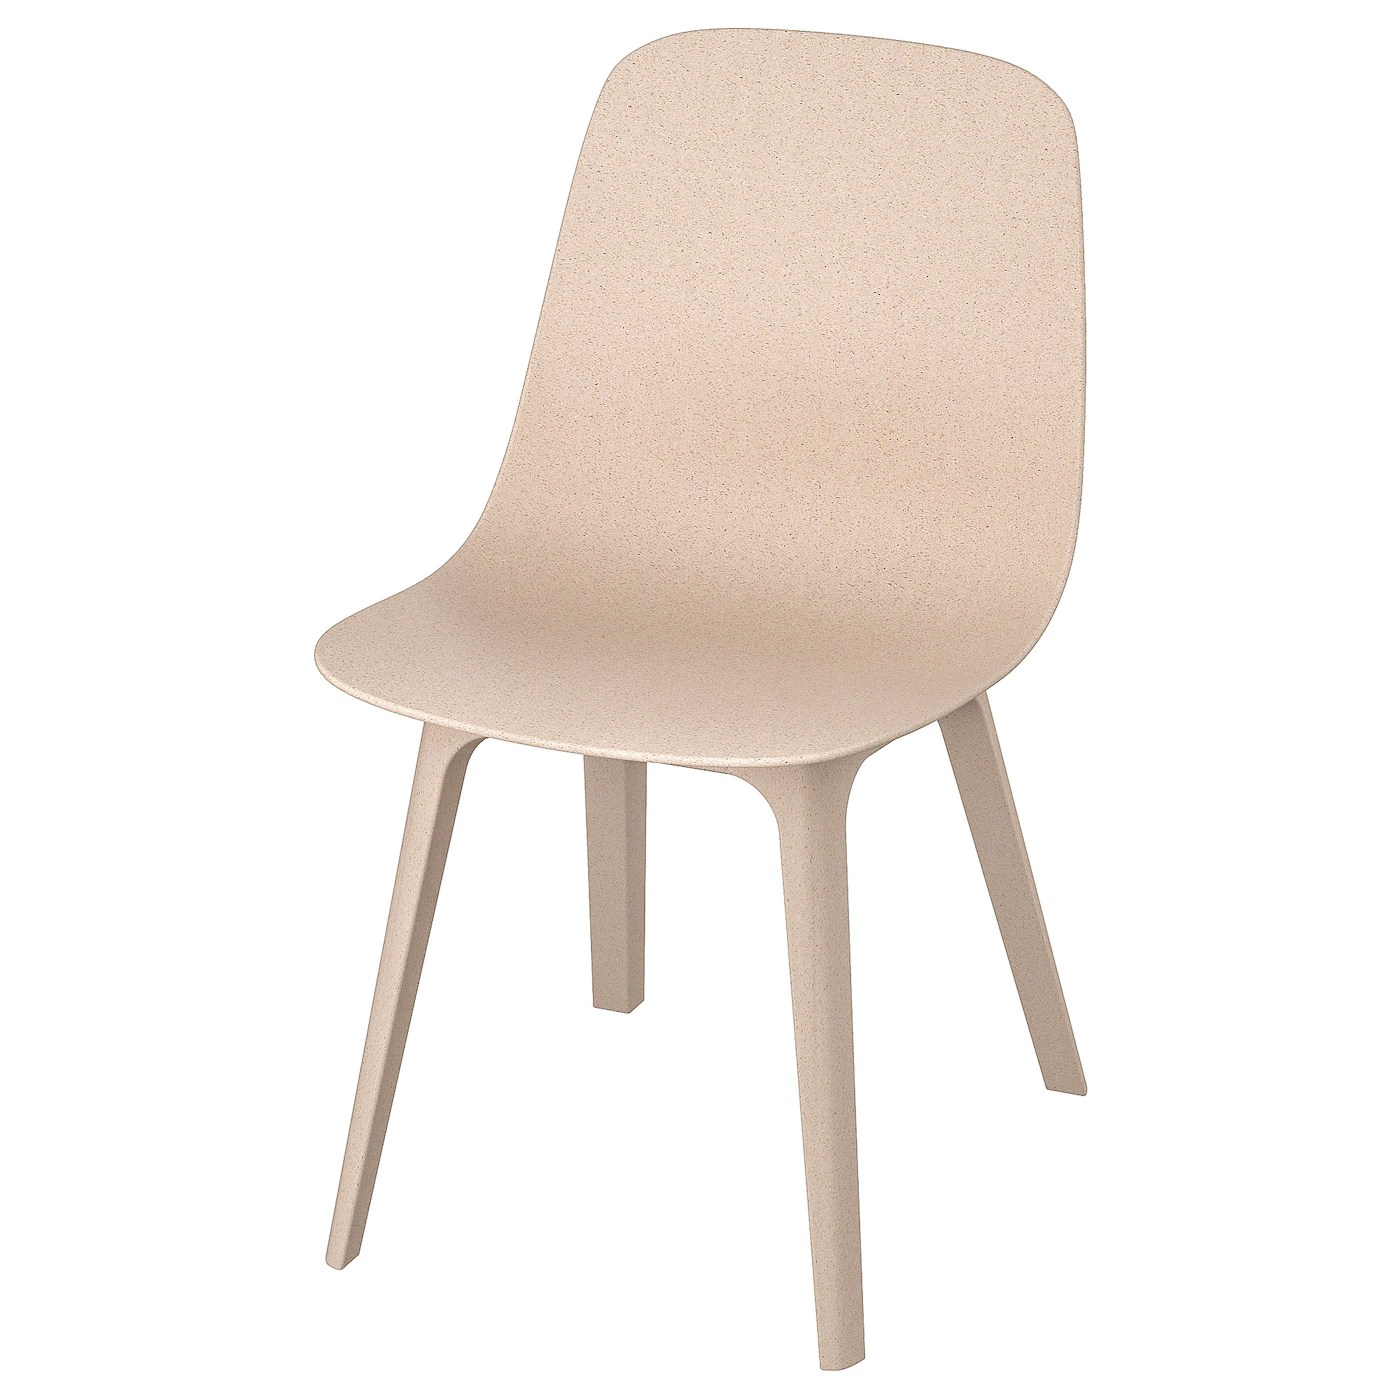 Baby Chairs To Sit Up Odger Chair White Beige Ikea